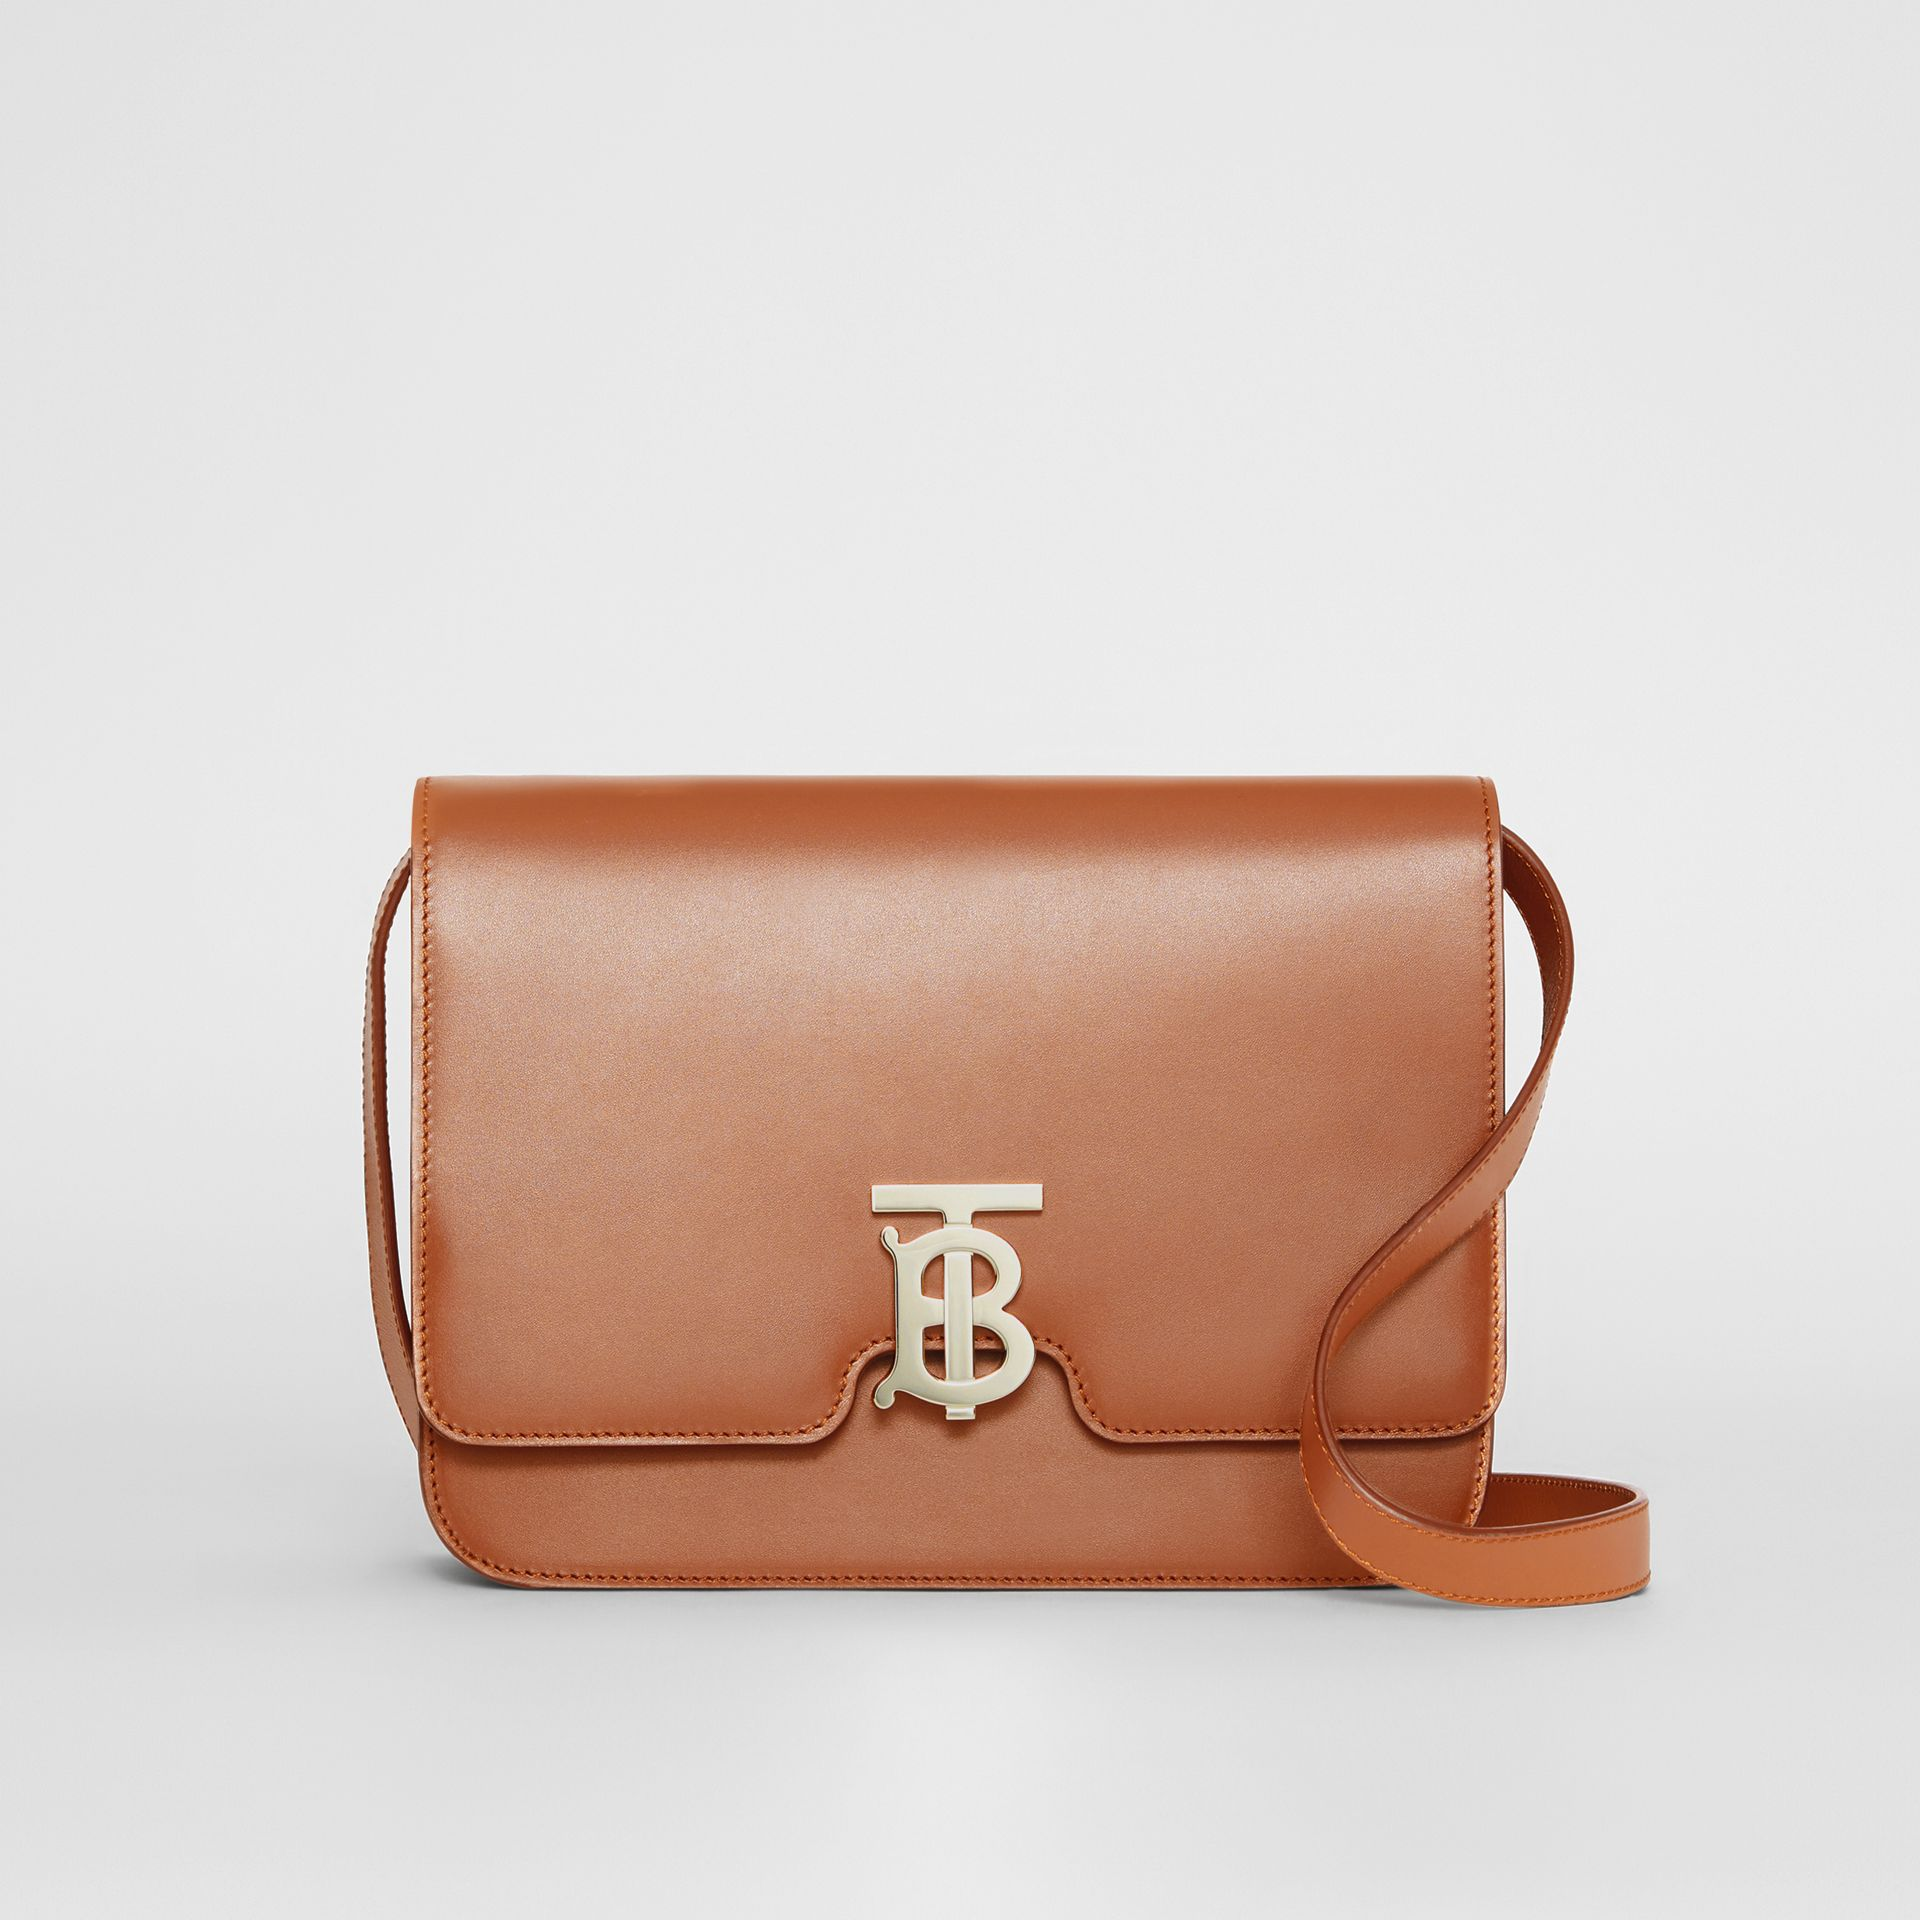 Medium Leather TB Bag in Malt Brown - Women | Burberry Canada - gallery image 0